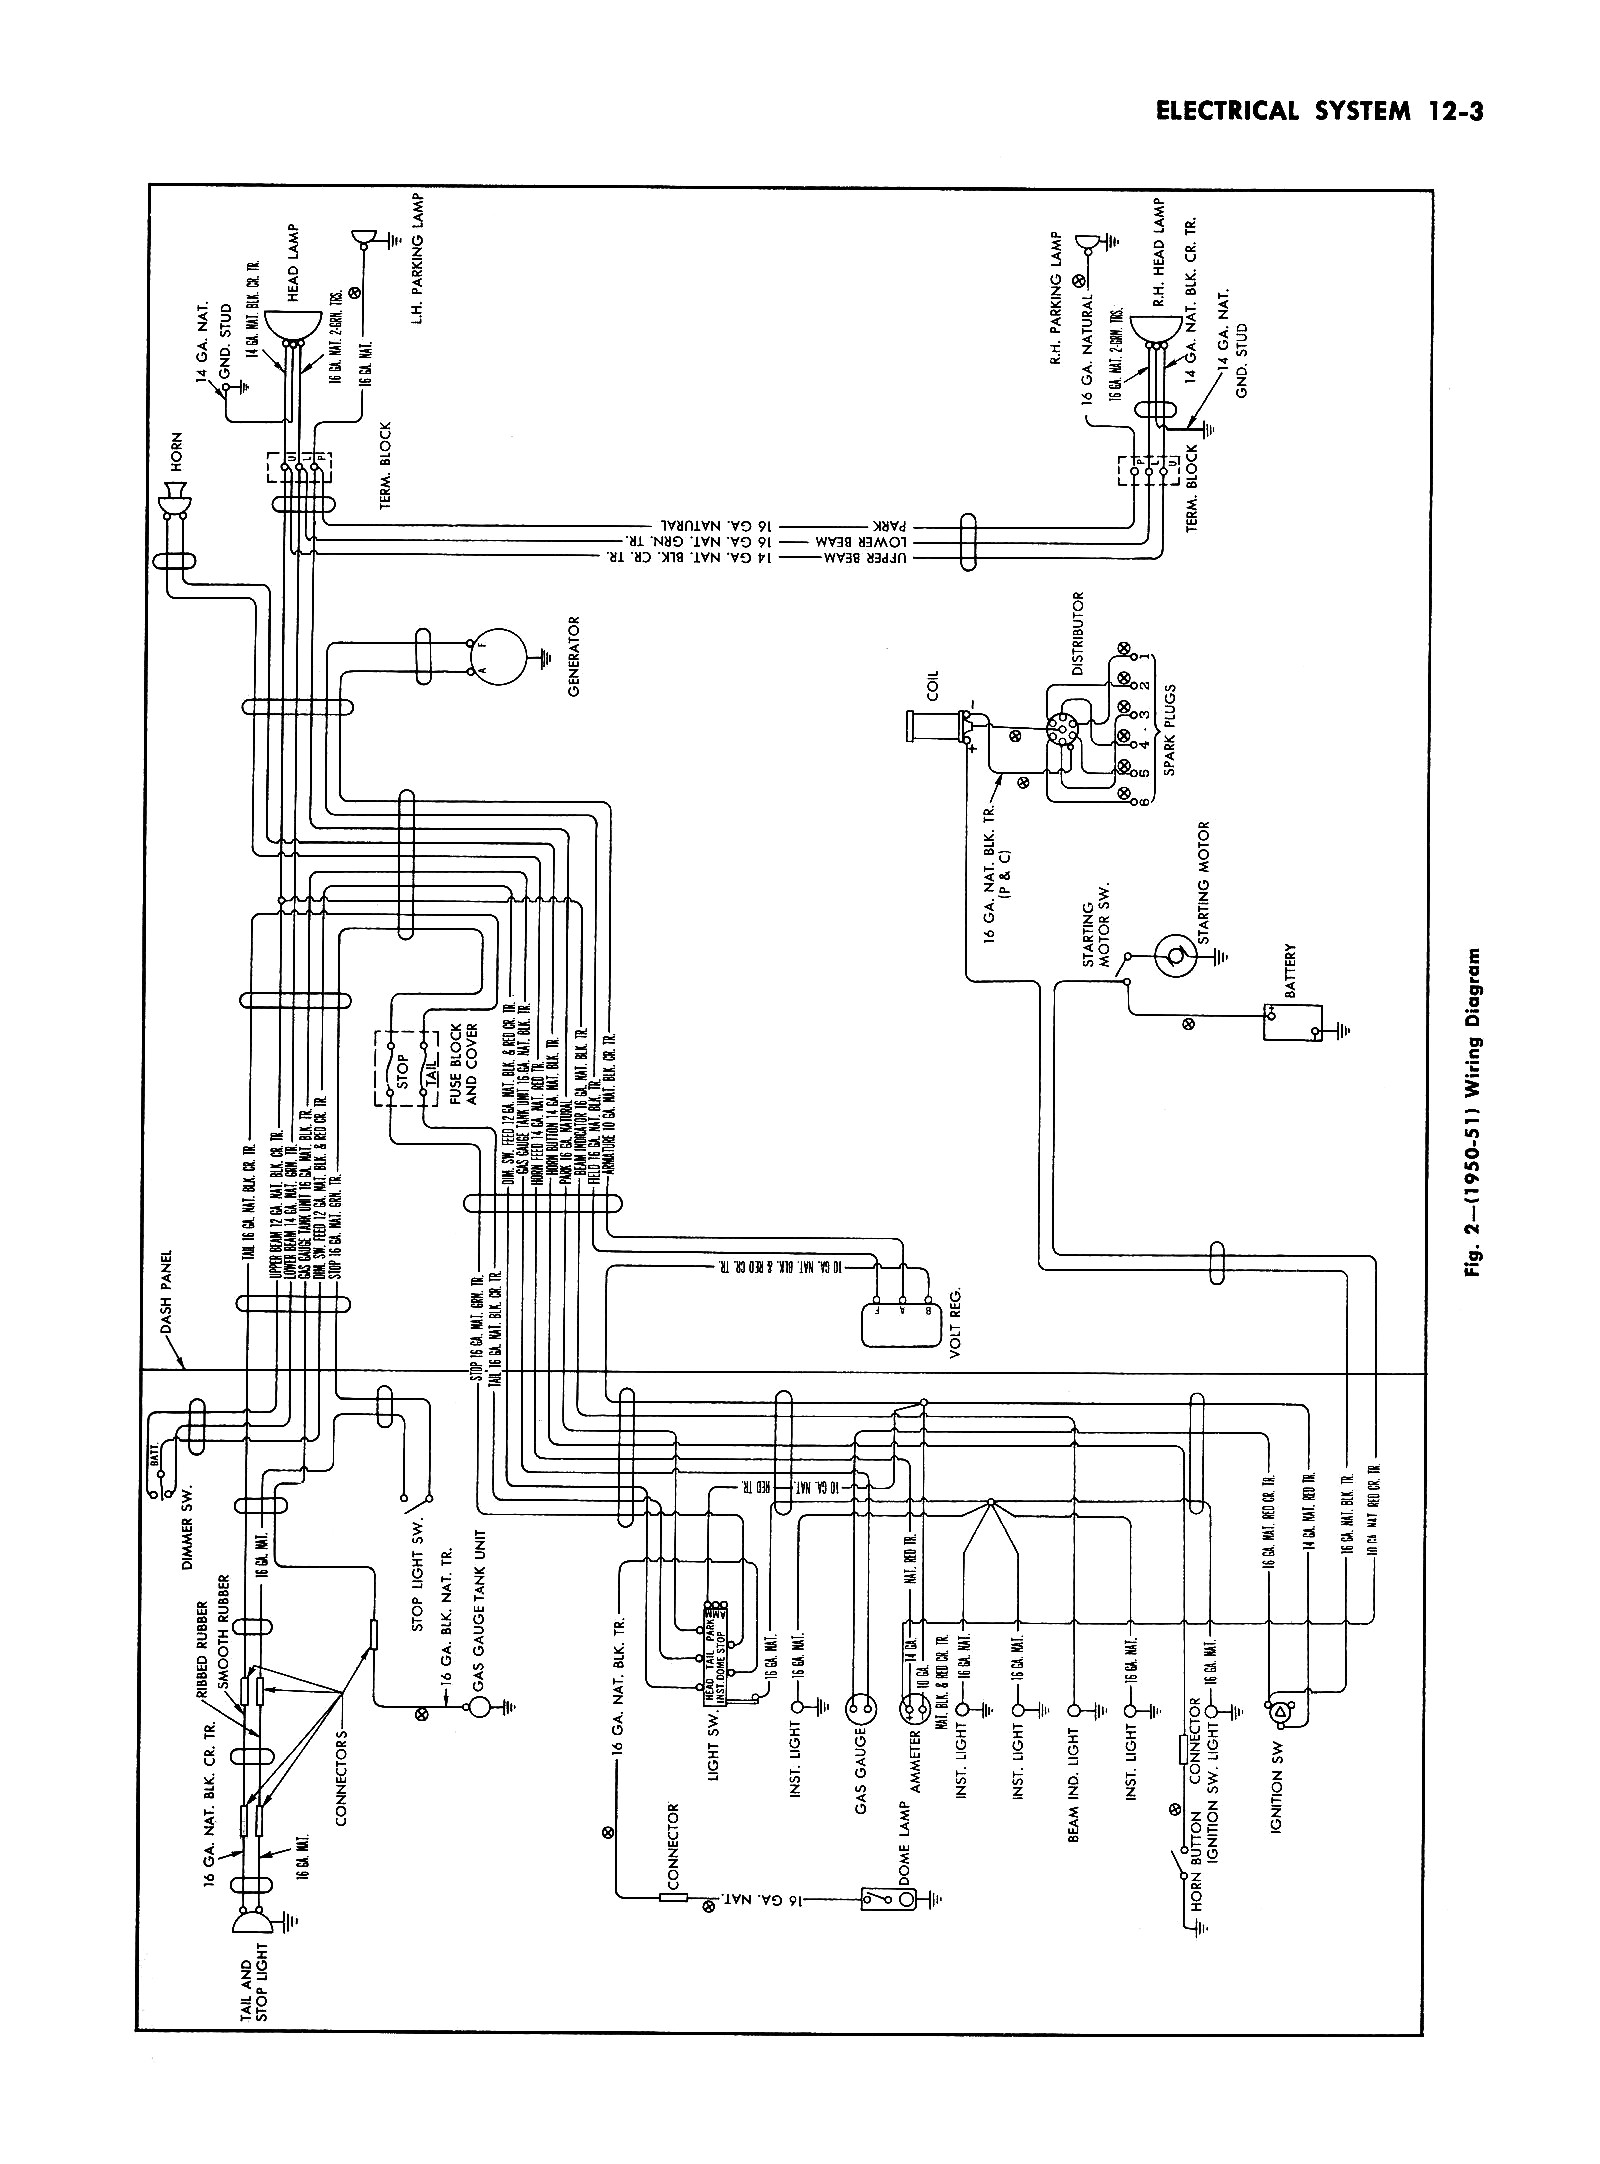 hight resolution of 6 volt positive ground wiring diagram for chrysler simple wiring 1951 mercury wiring diagram still six volts with a positive ground